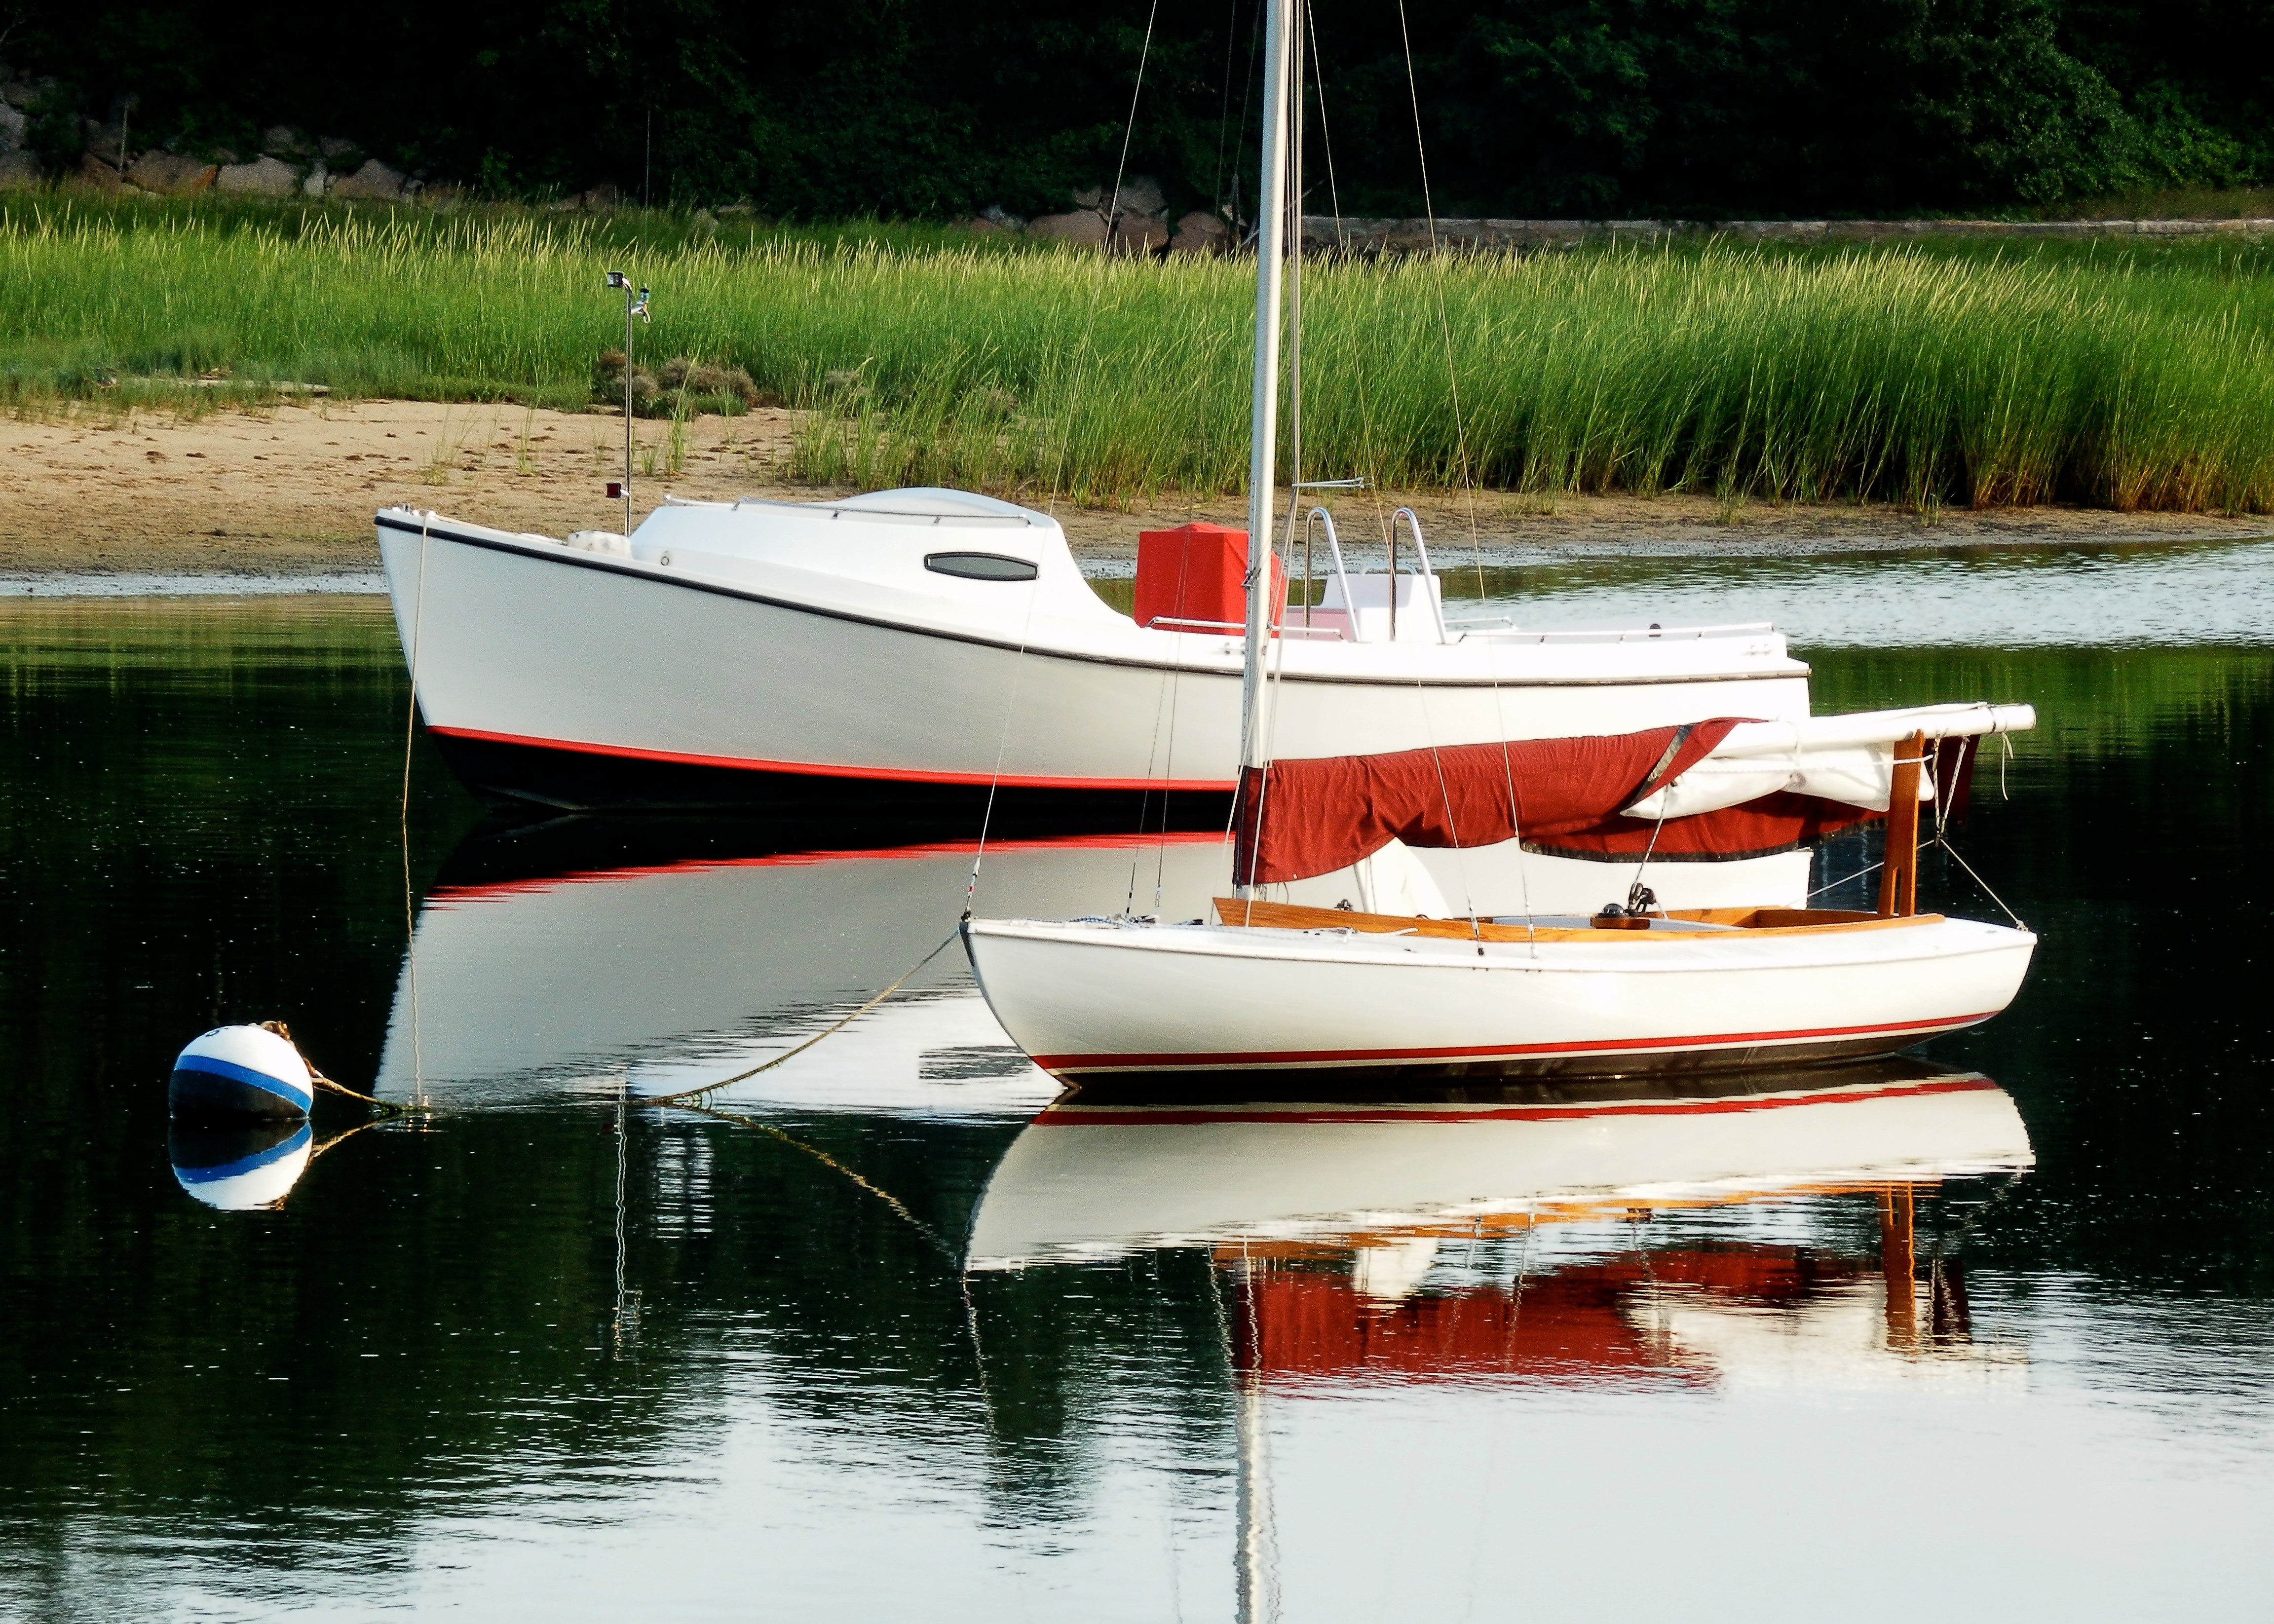 sail and motor boats together author lucke charli charlie